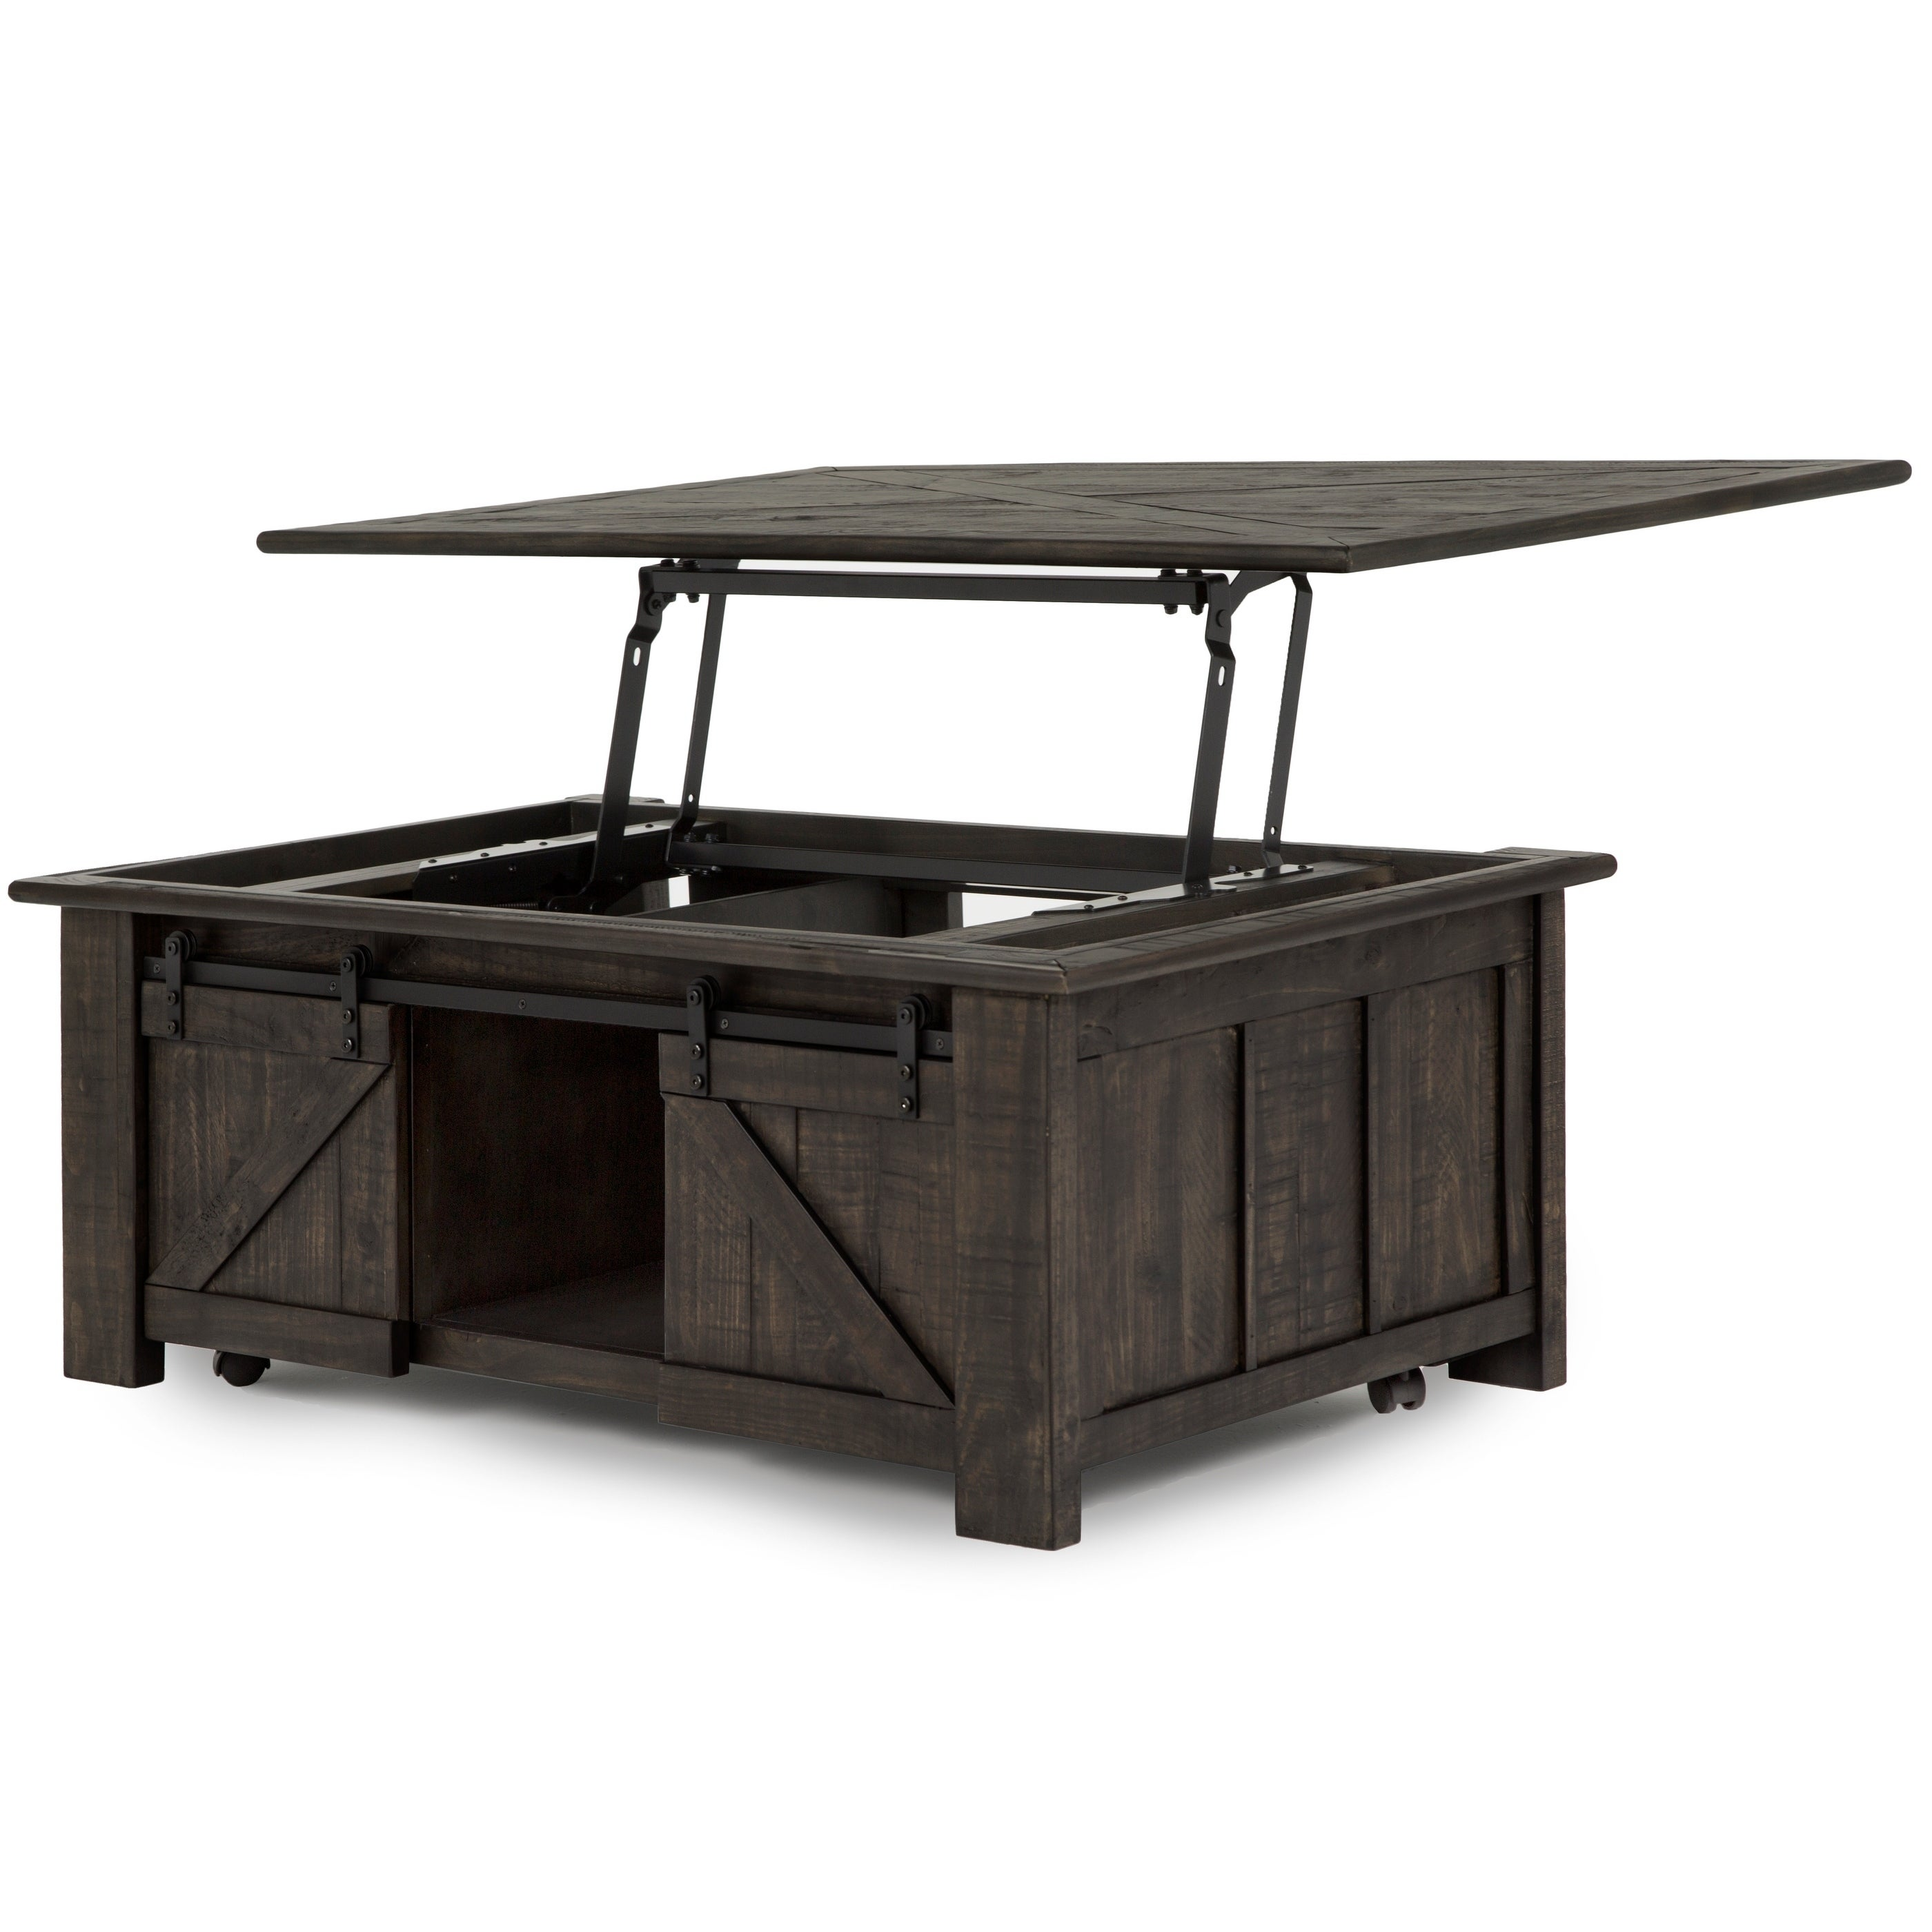 Lift Coffee Table.Garrett Rustic Weathered Charcoal Lift Top Sliding Door Coffee Table With Casters